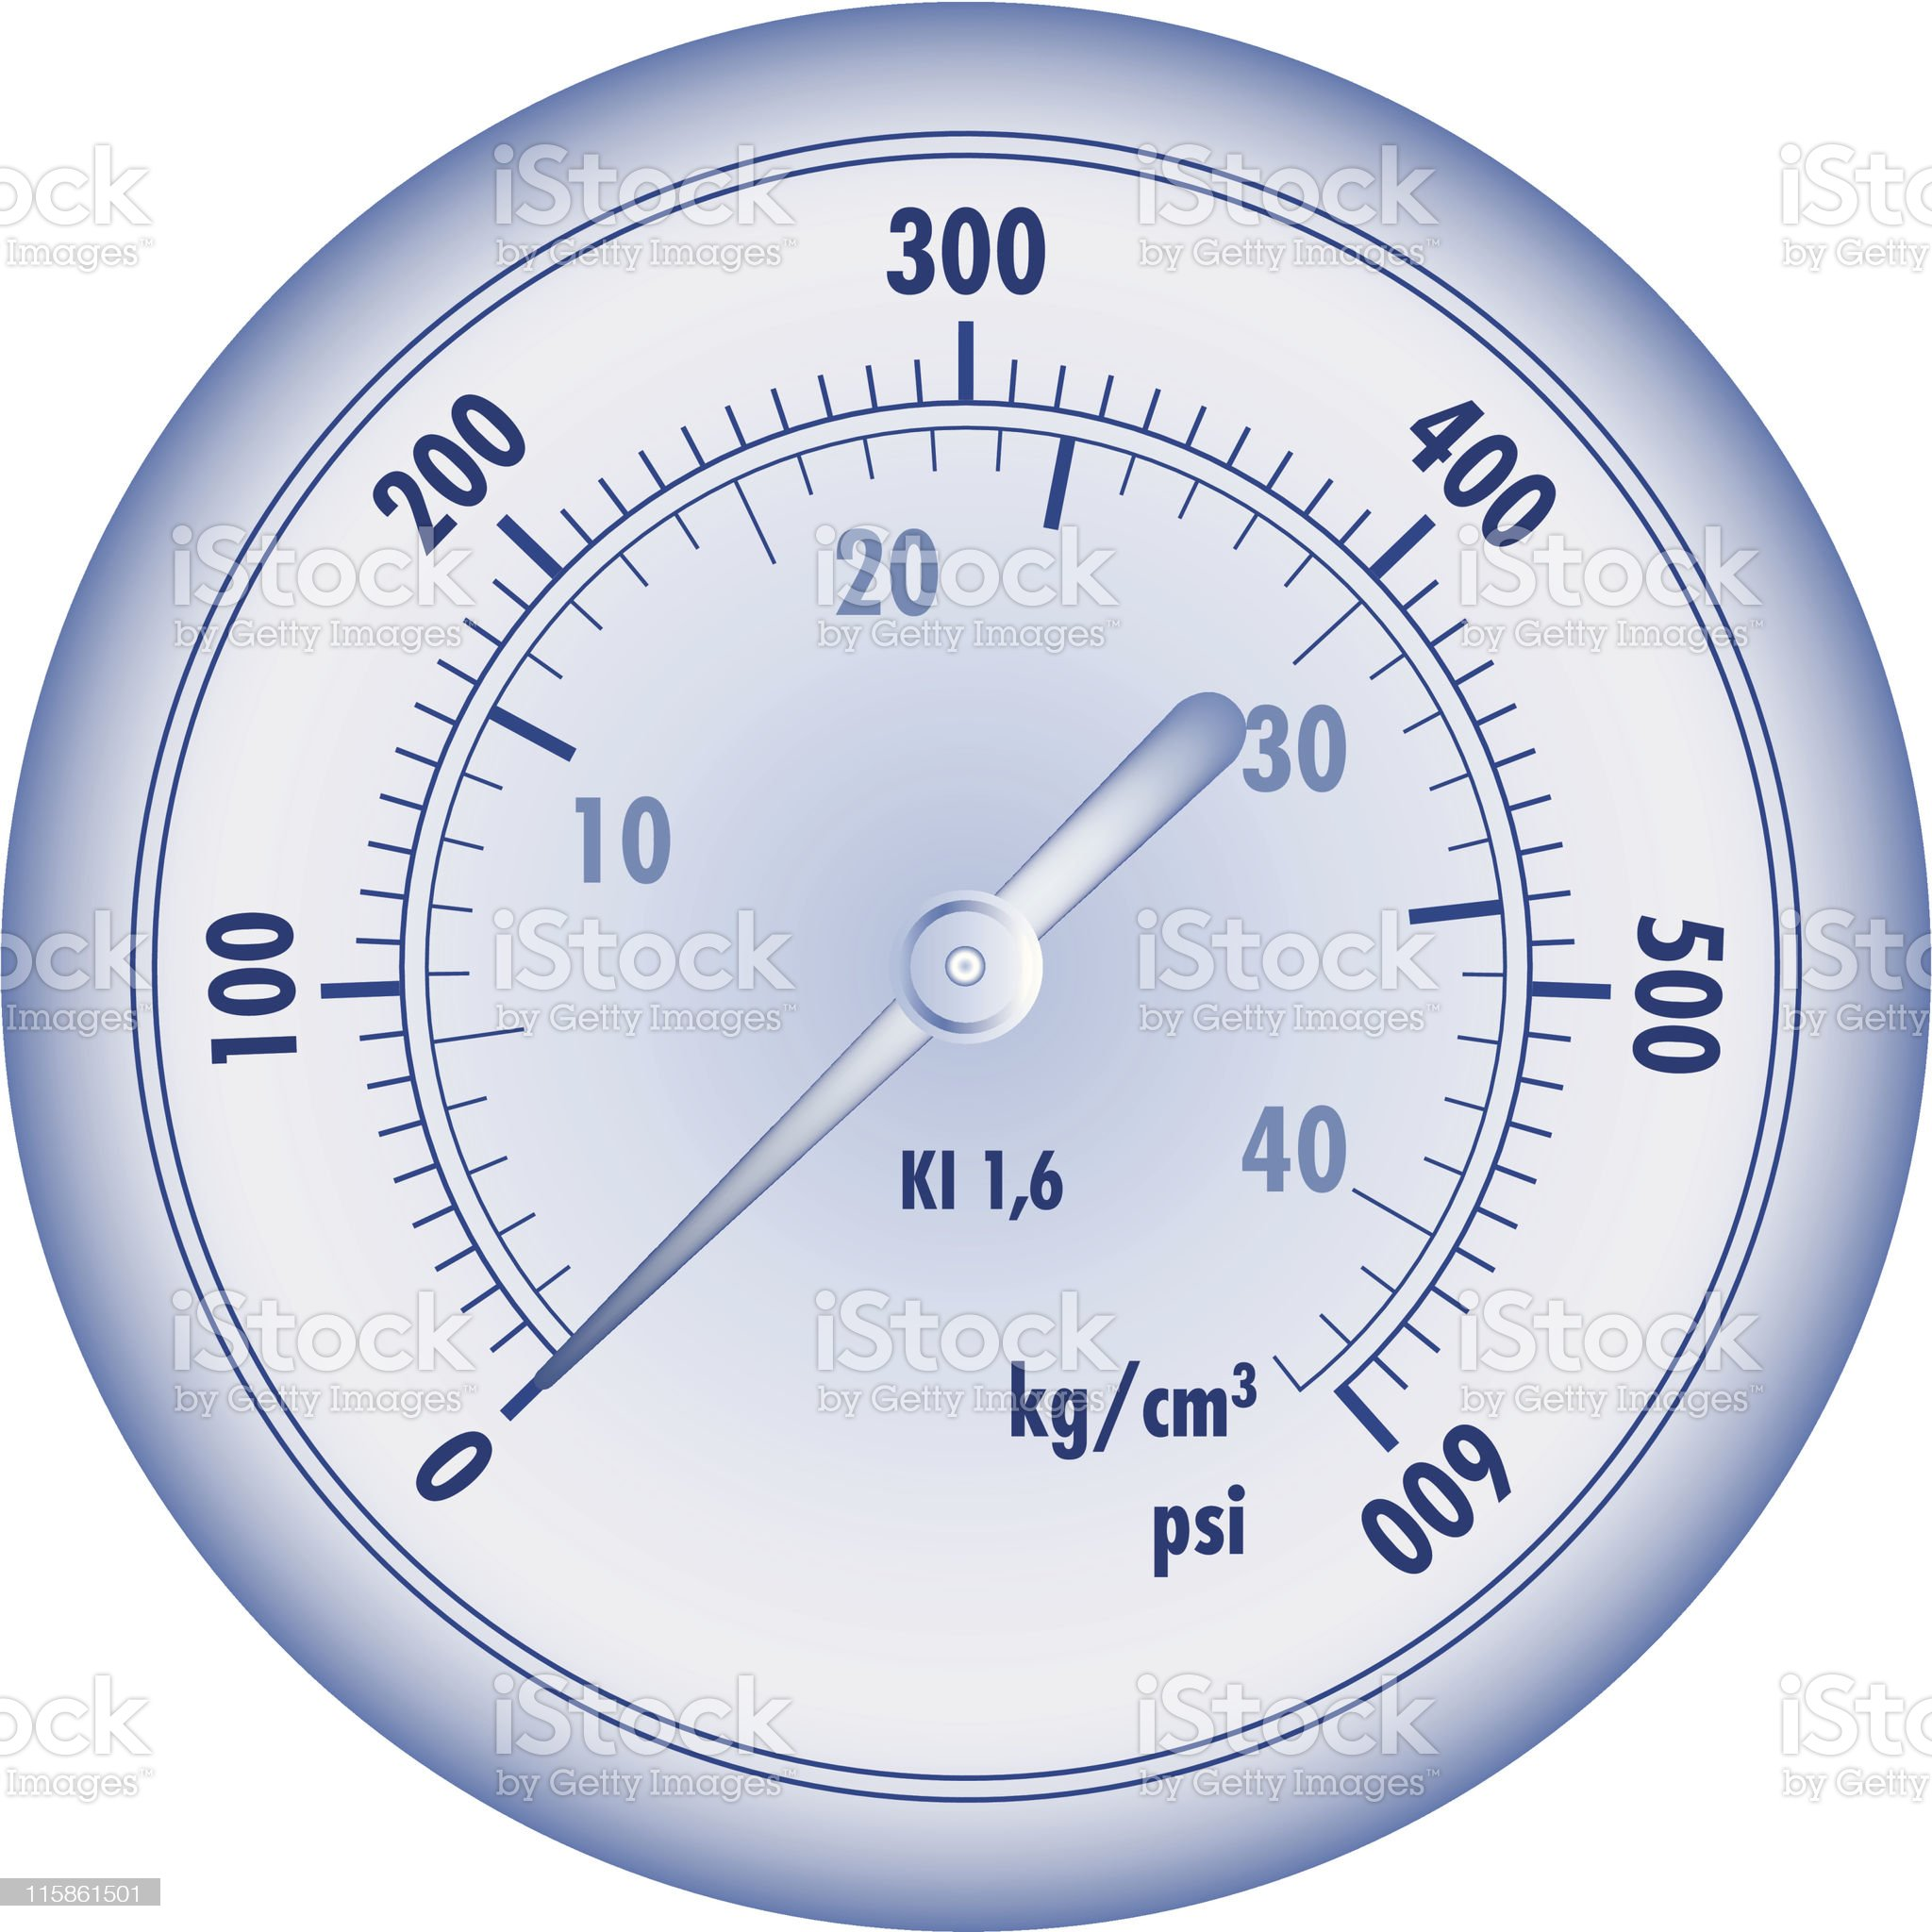 Meter for hydraulic measuring royalty-free stock vector art